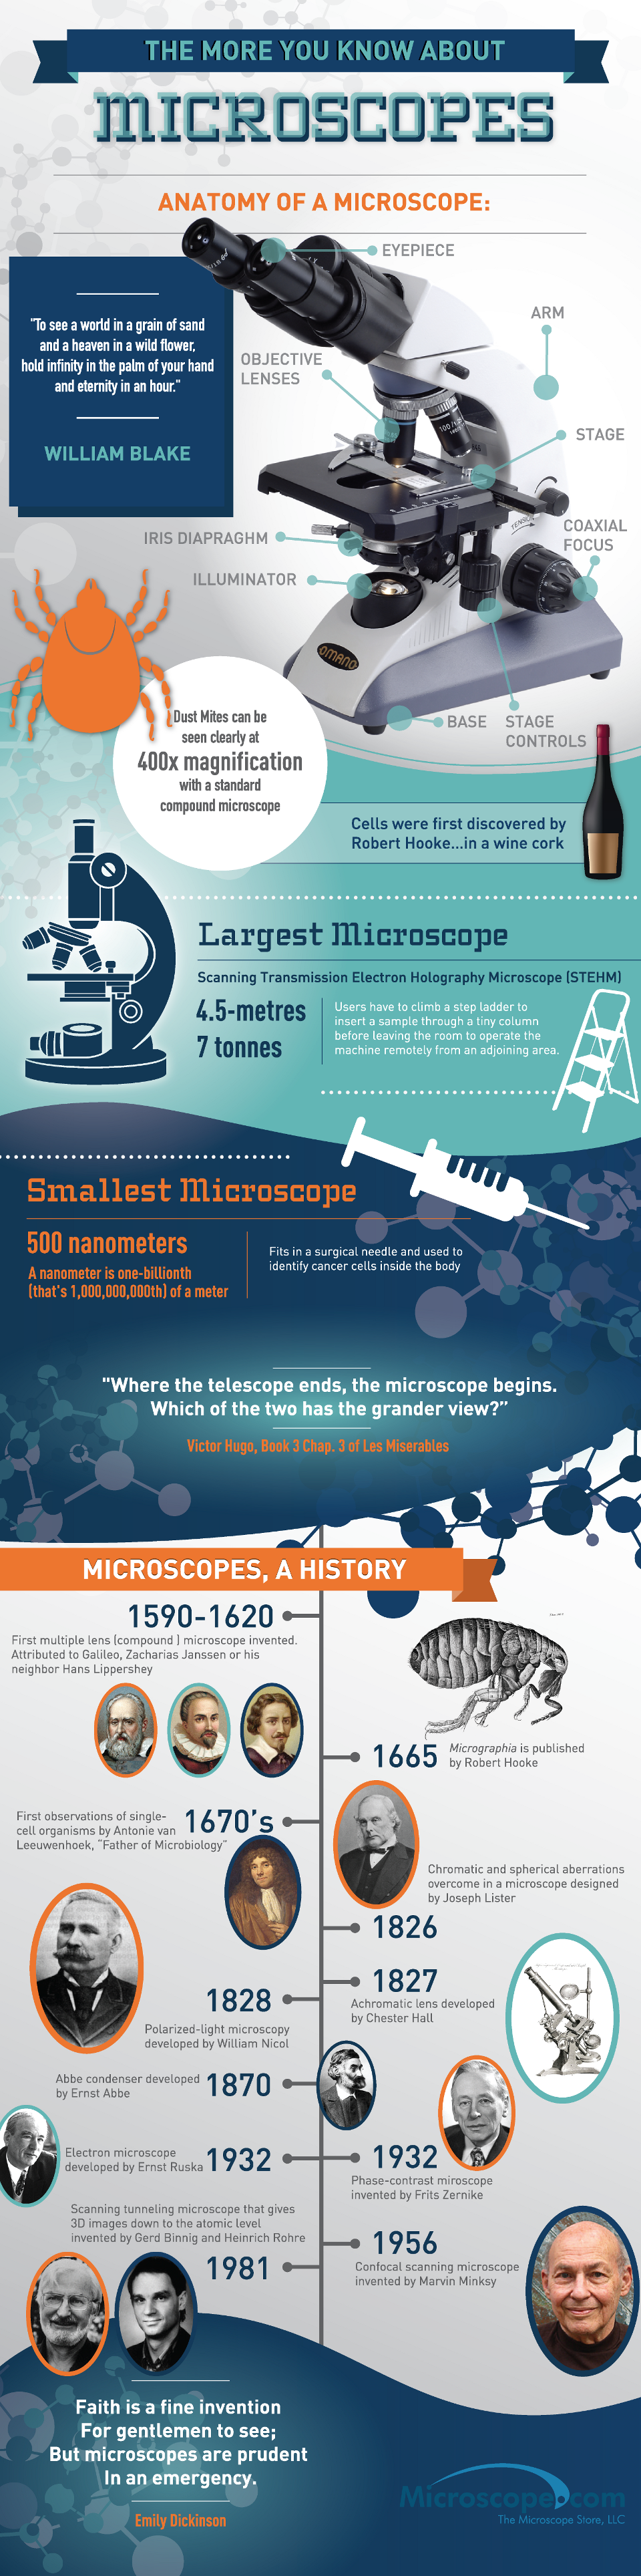 Anatomy Of The Microscope [Infographic]